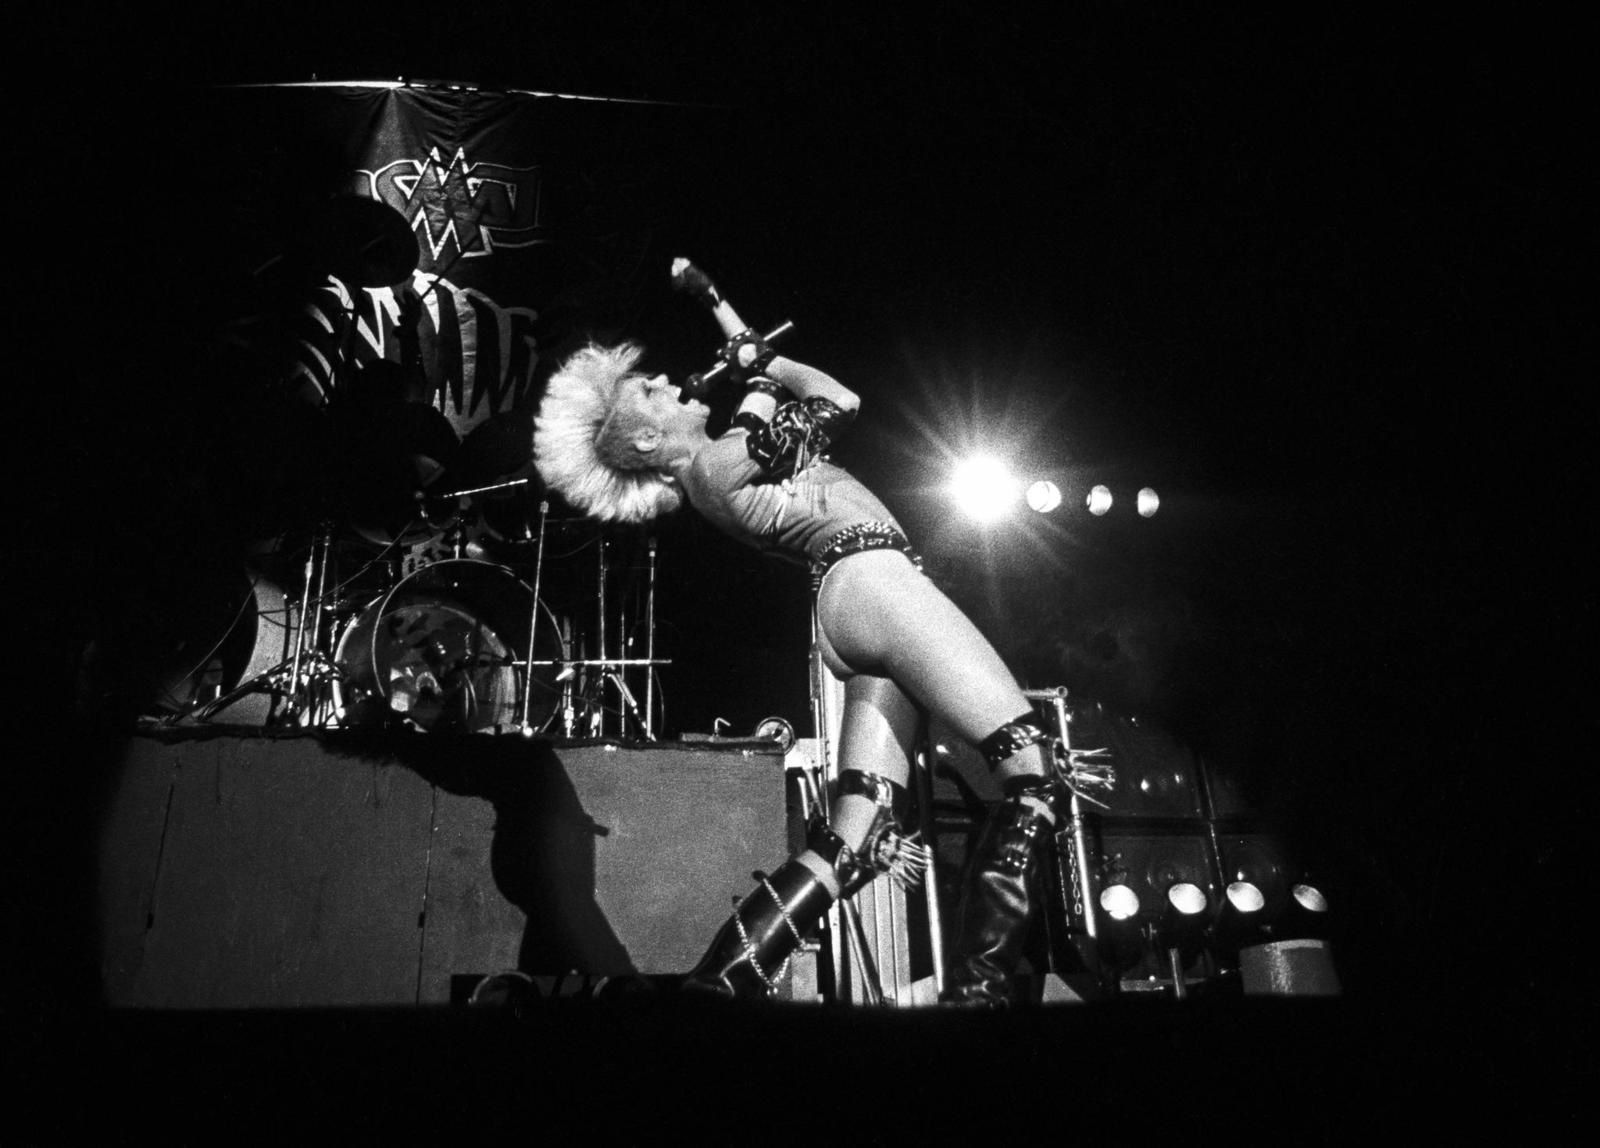 Wendy O. Williams - Mohawk on stage